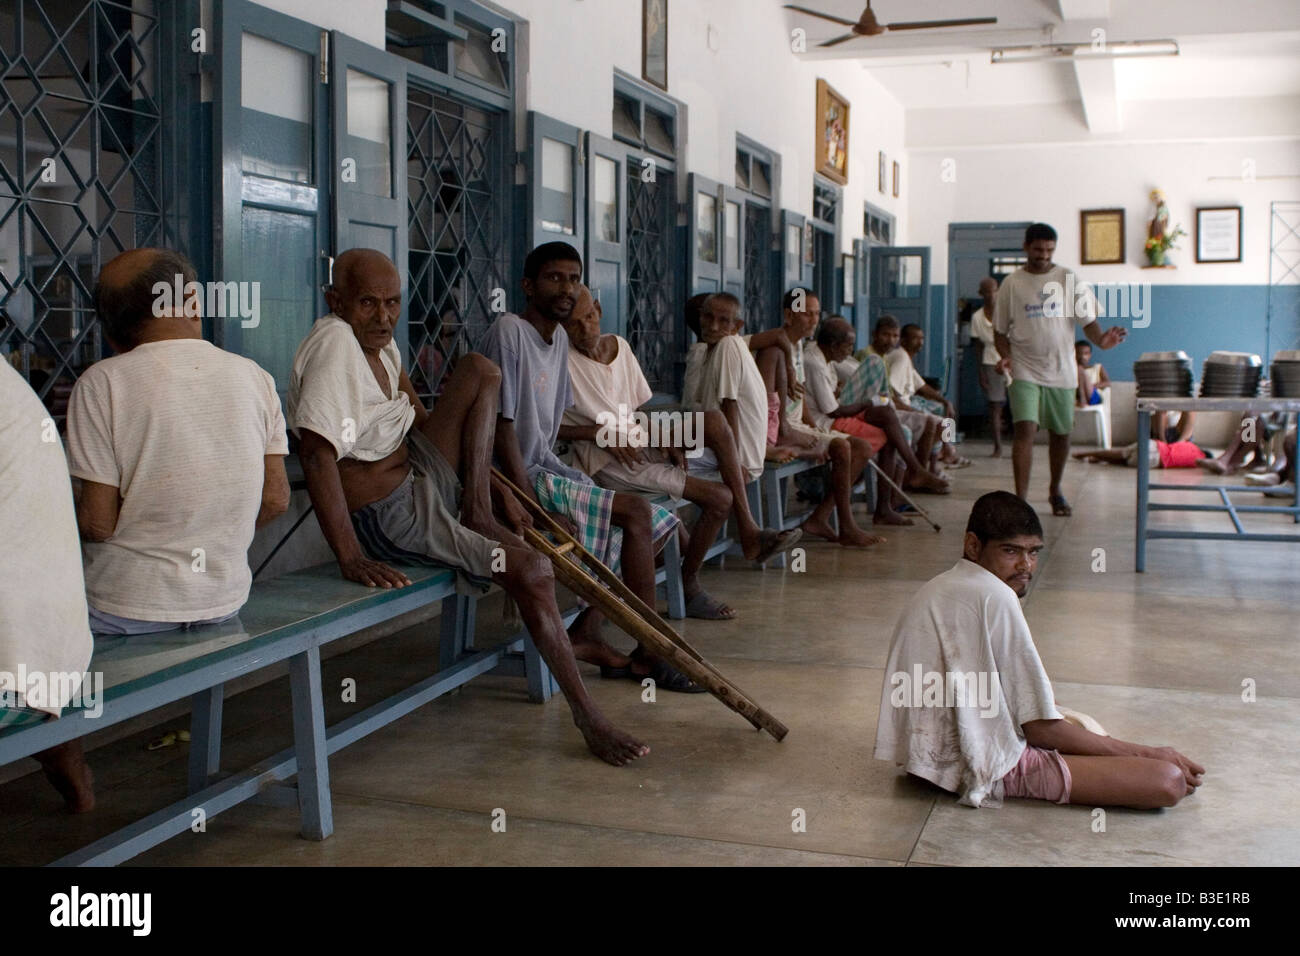 Men with various illnesses sit on the veranda of the Prem Dan Home for the Sick and Elderly in Kolkata, India. - Stock Image